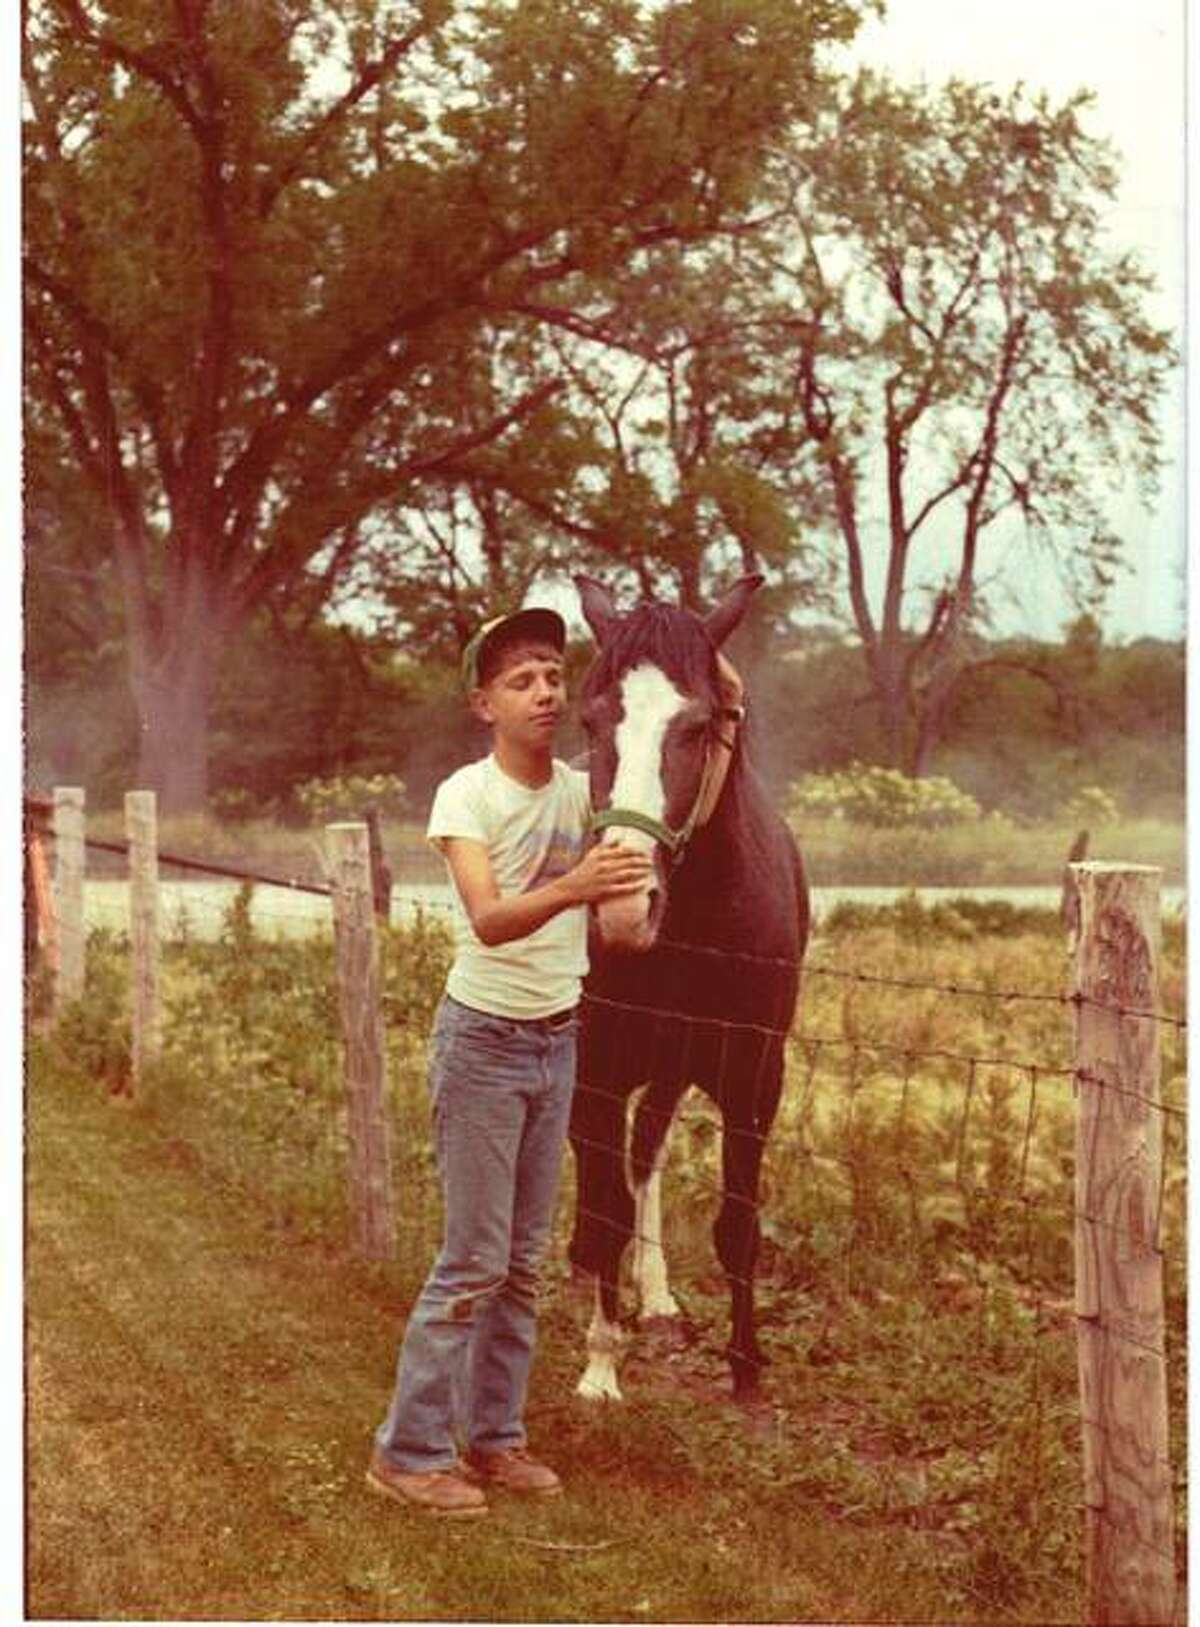 A young Scott Reeder is pictured with his horse, Ramona, named after the popular Beverly Cleary character.